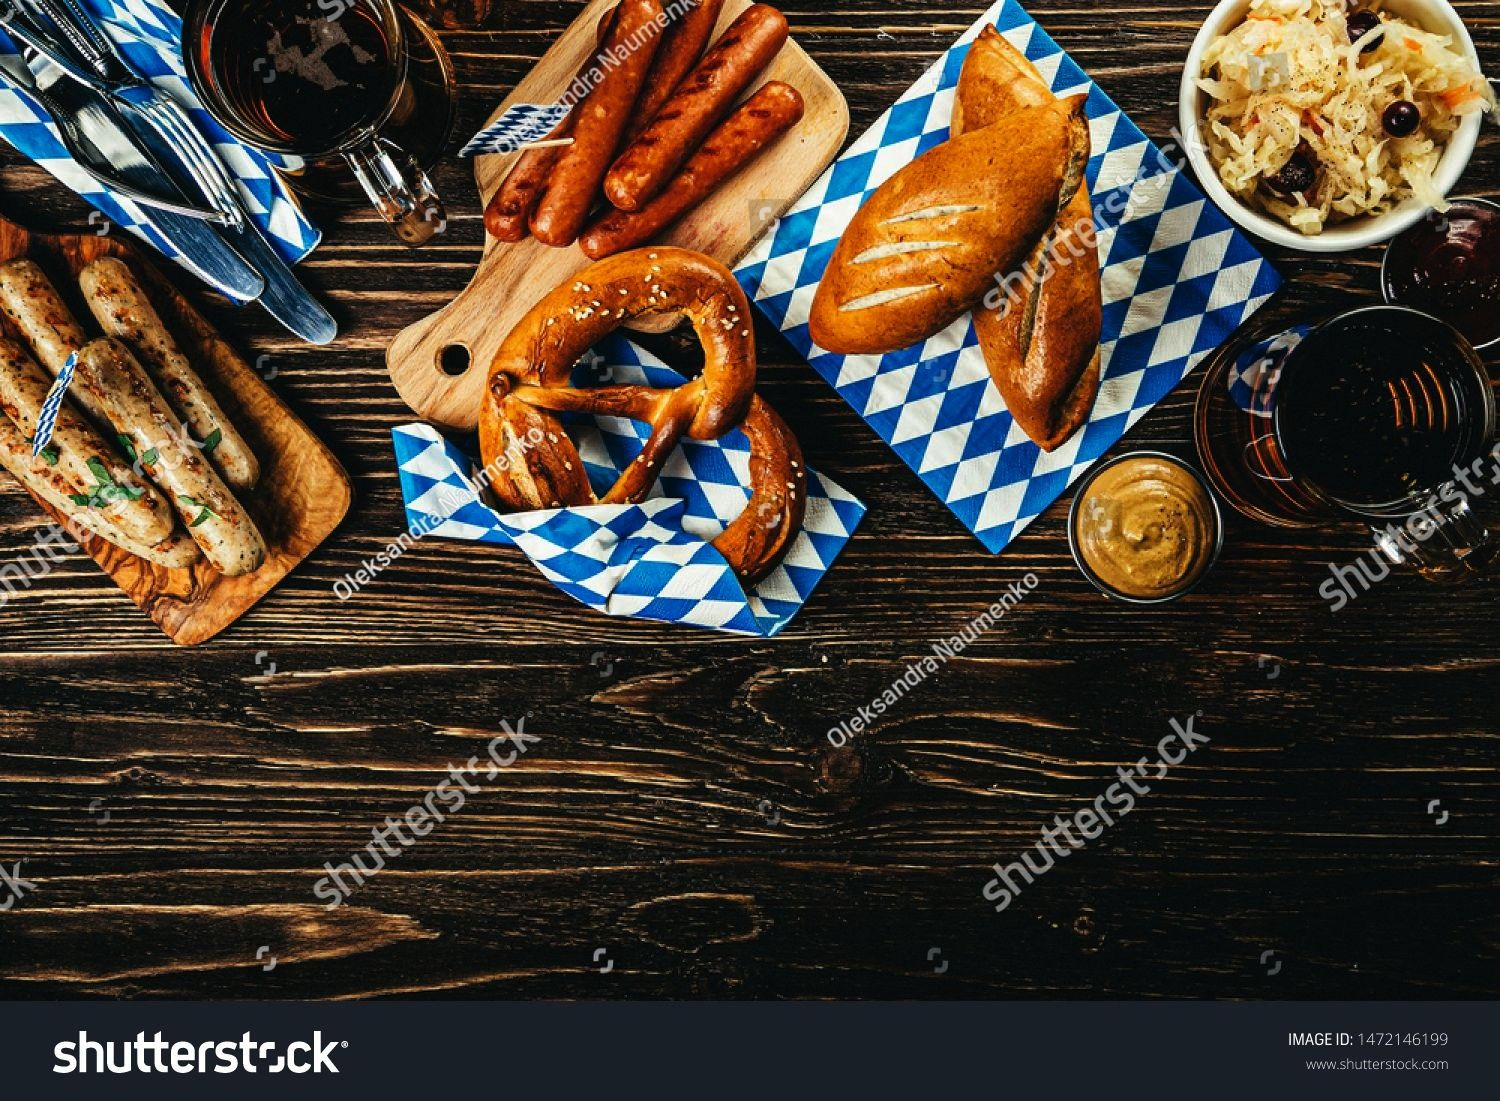 fest concept  traditional food and beer served at event wood background October fest concept  traditional food and beer served at event wood background  19 ideas for desi...